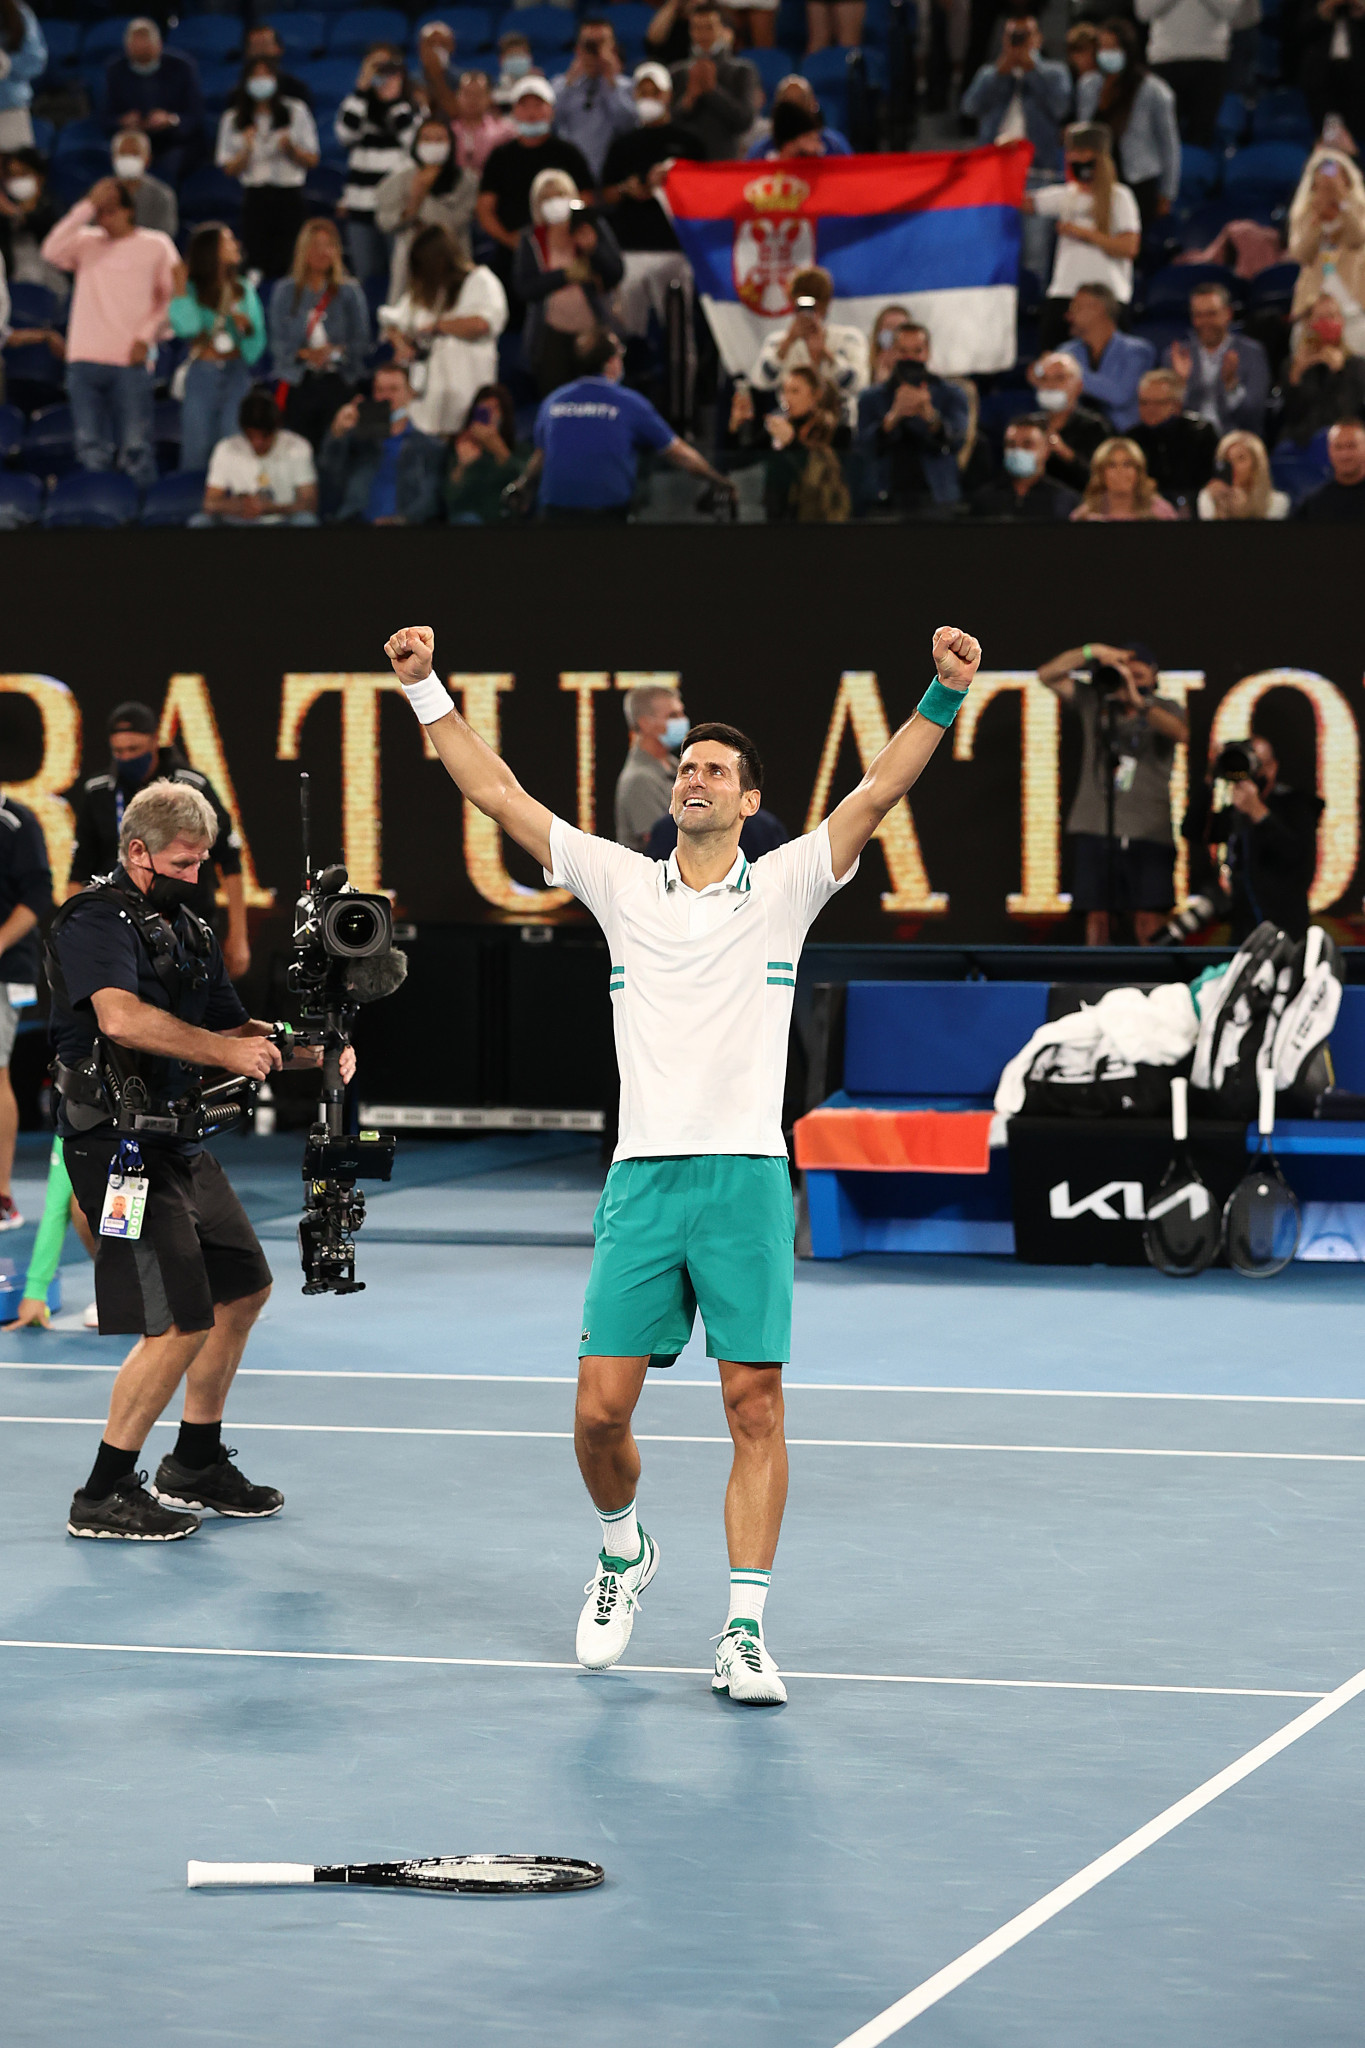 Novak Djokovic celebrates after defeating Daniil Medvedev in the Australian Open men's singles final ©Getty Images